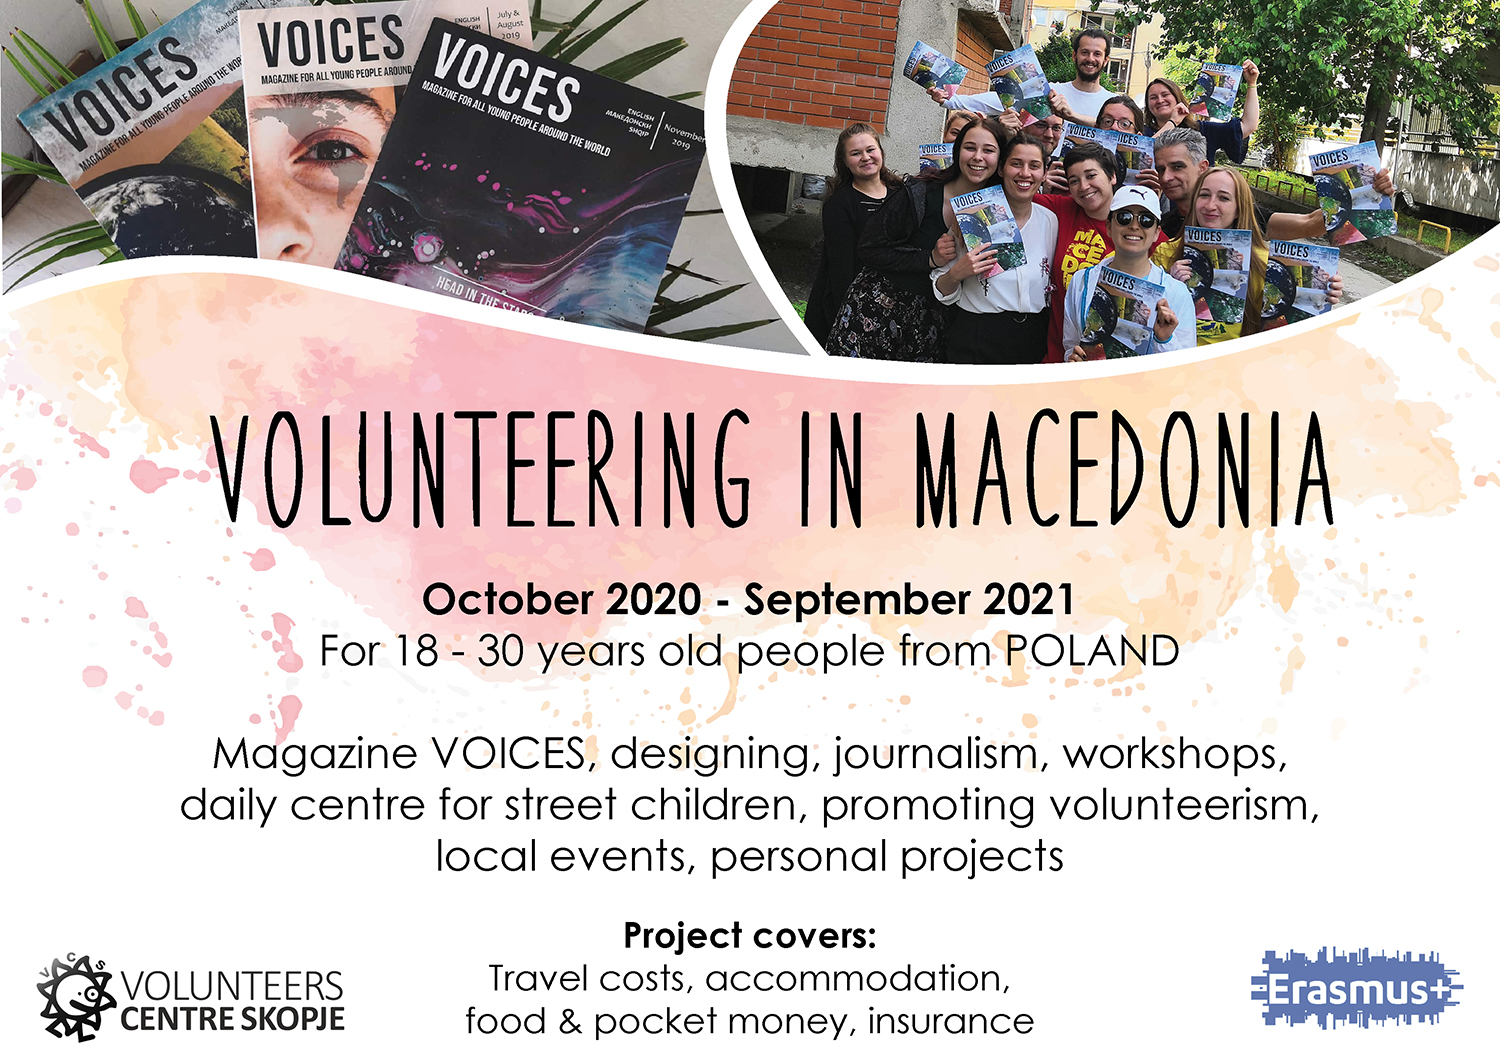 Call for volunteers from Poland to Macedonia!